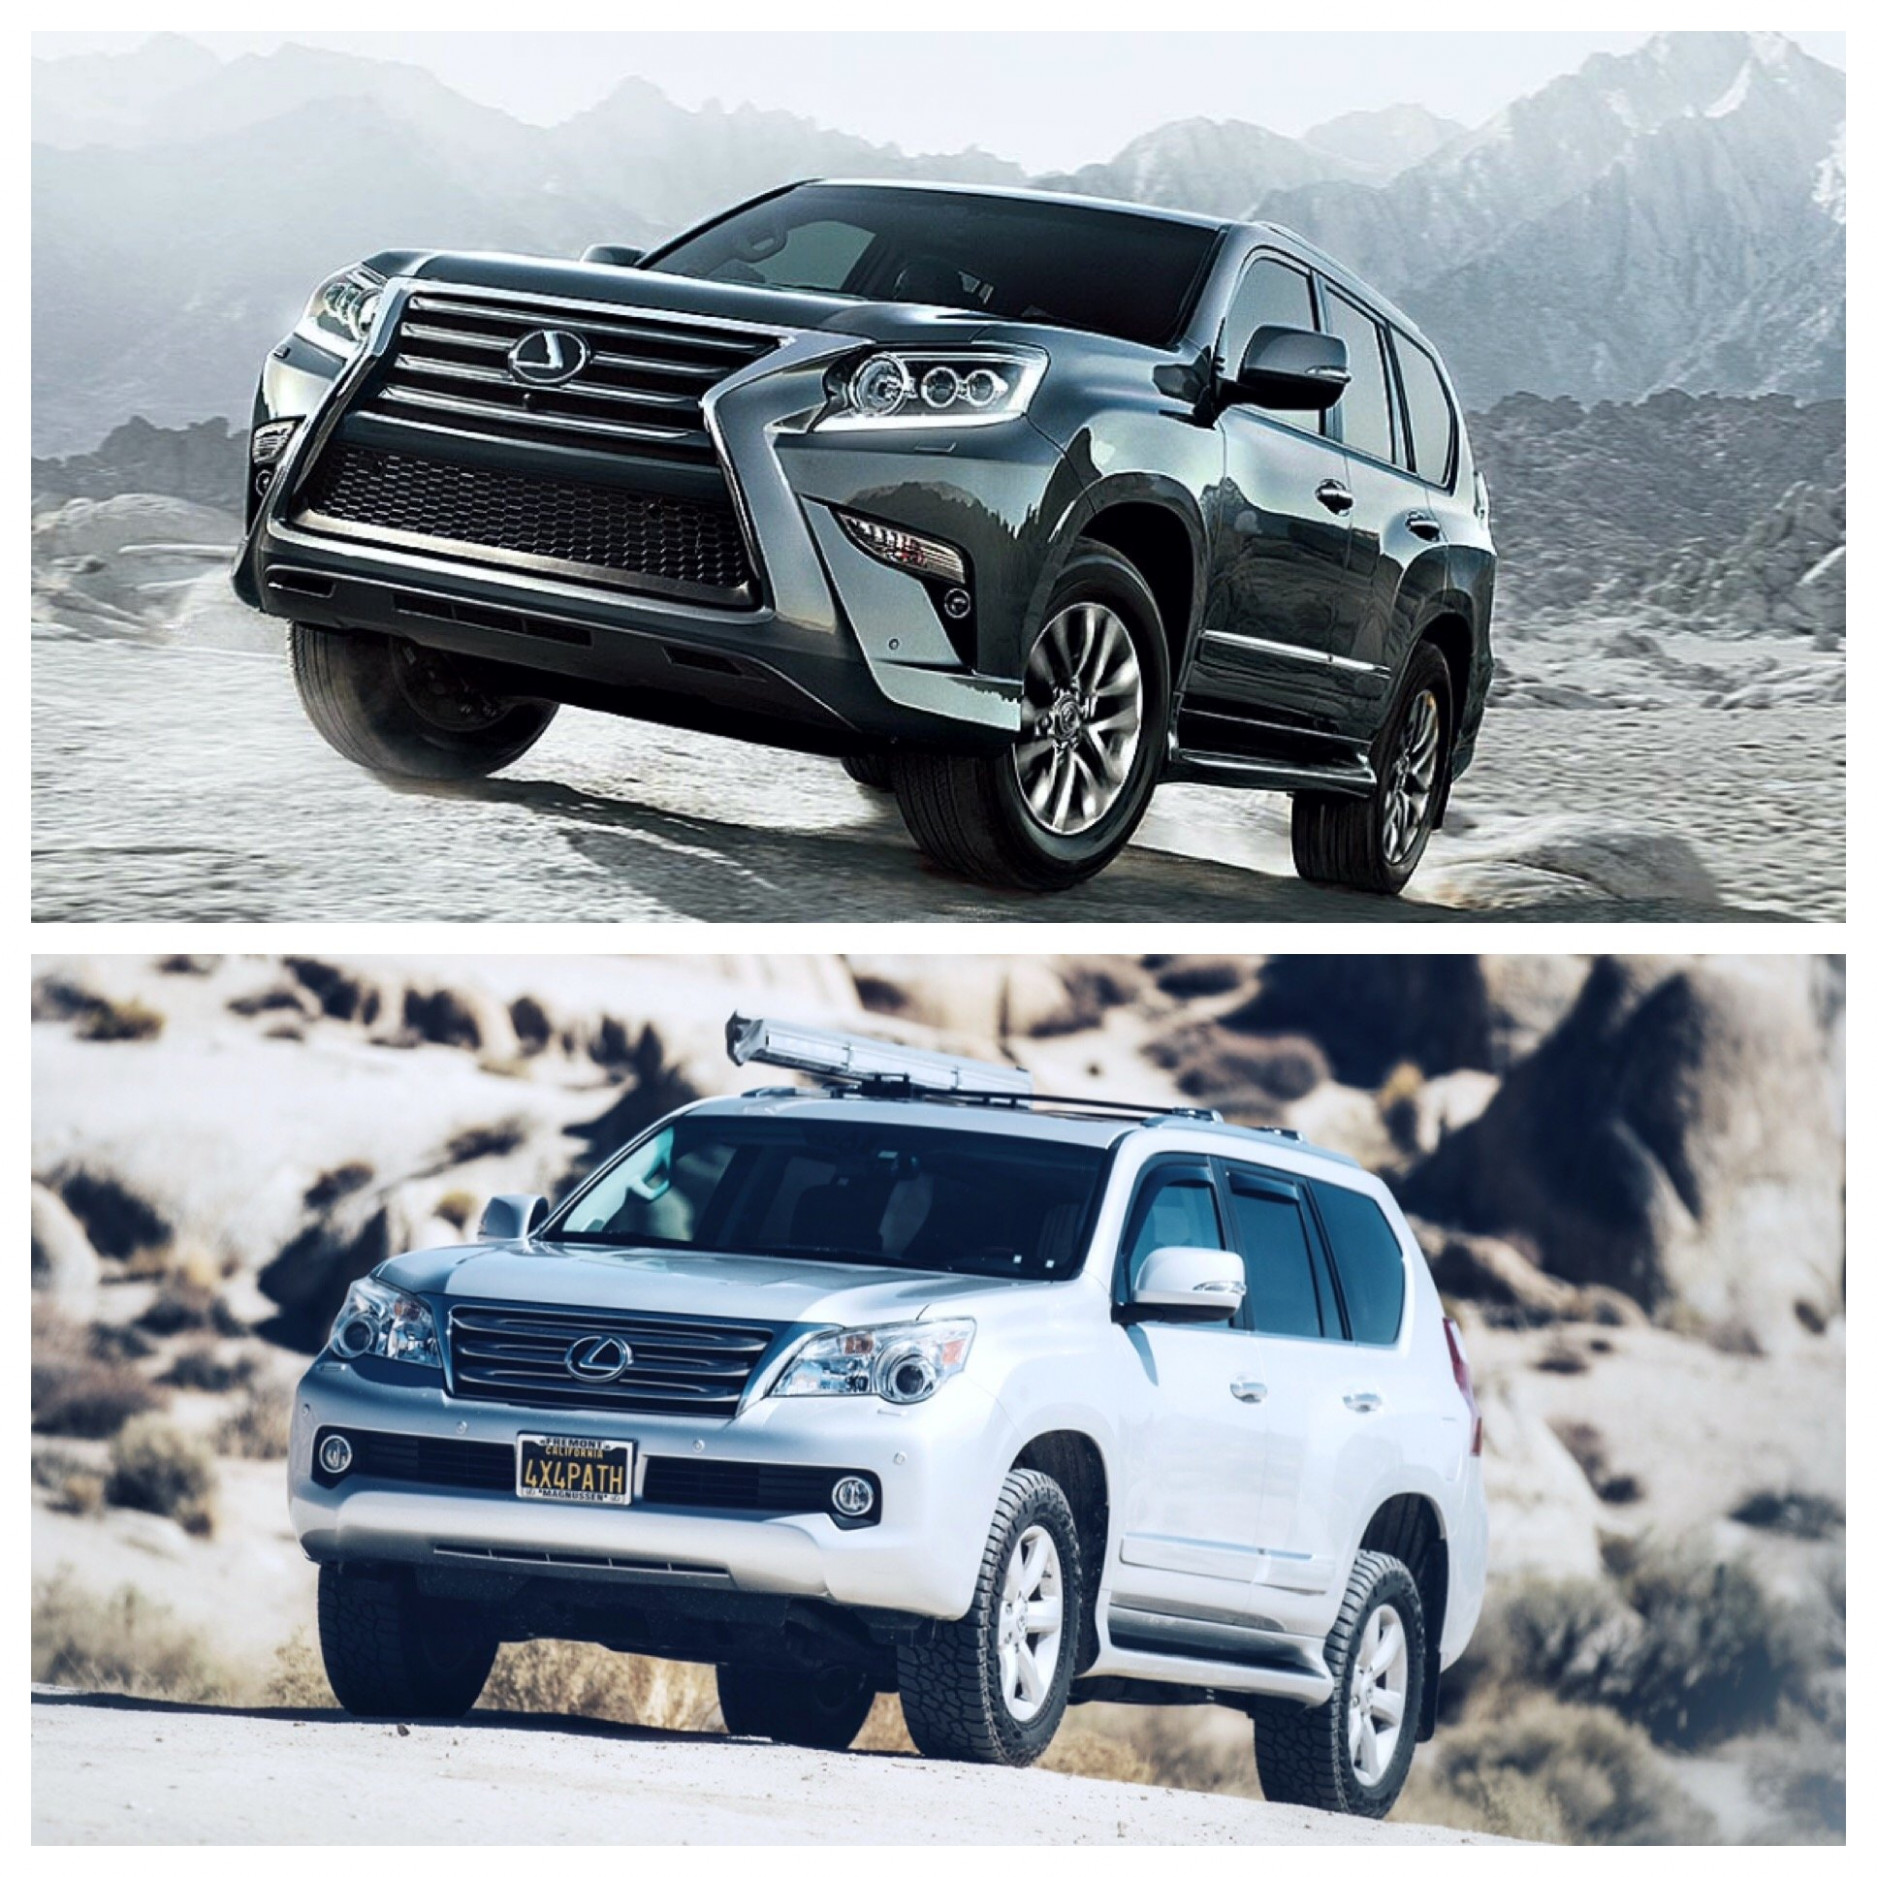 Performance 2022 Lexus Gx 460 Spy Photos